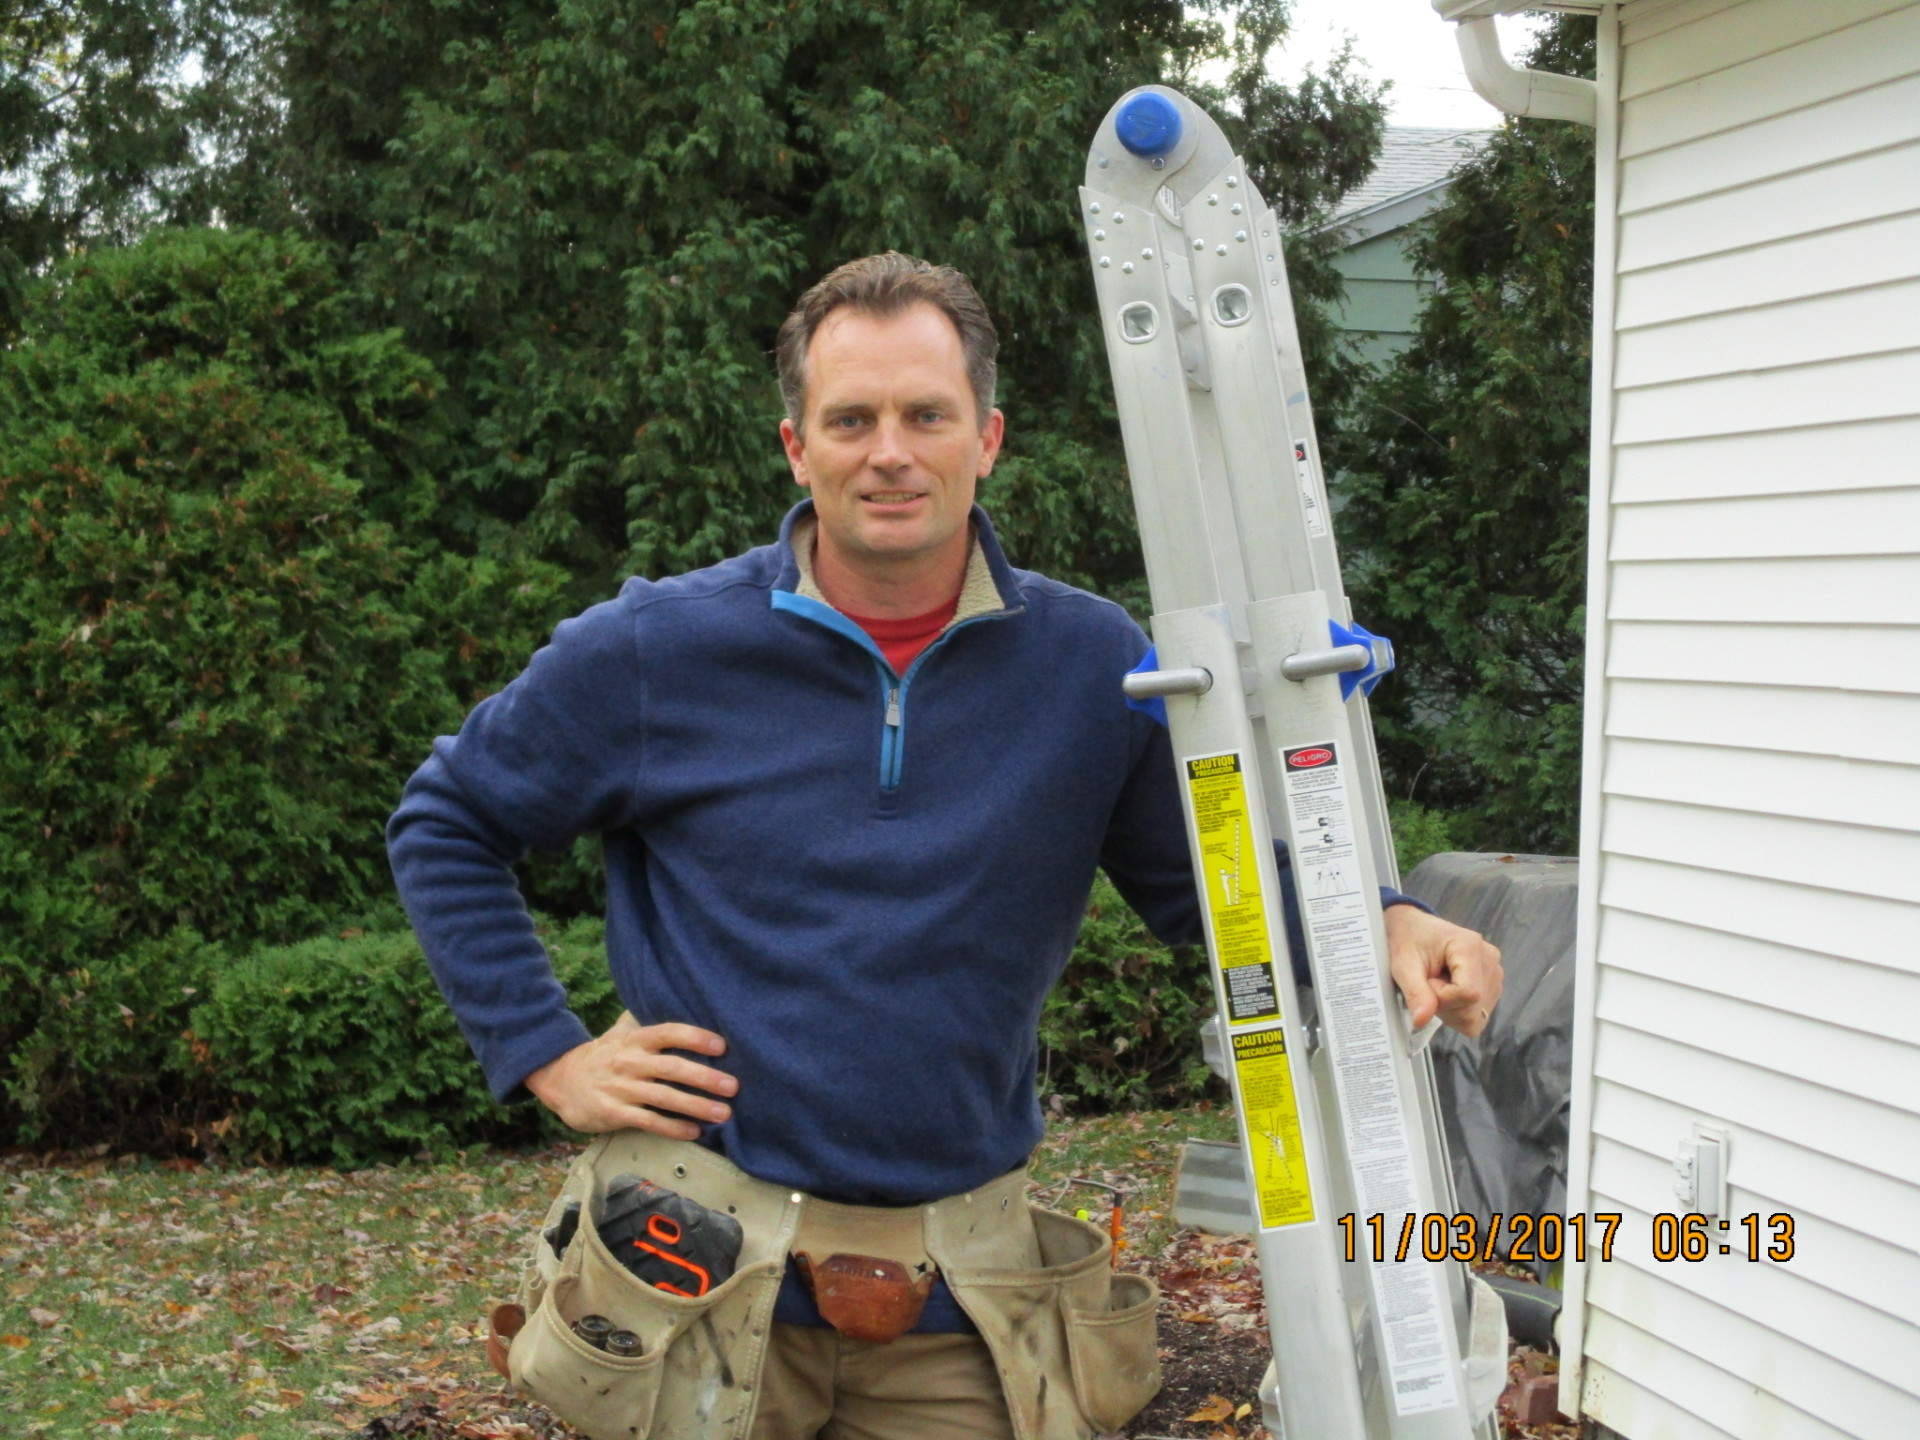 Home Inspector Bret Burrows inspecting parts of a home